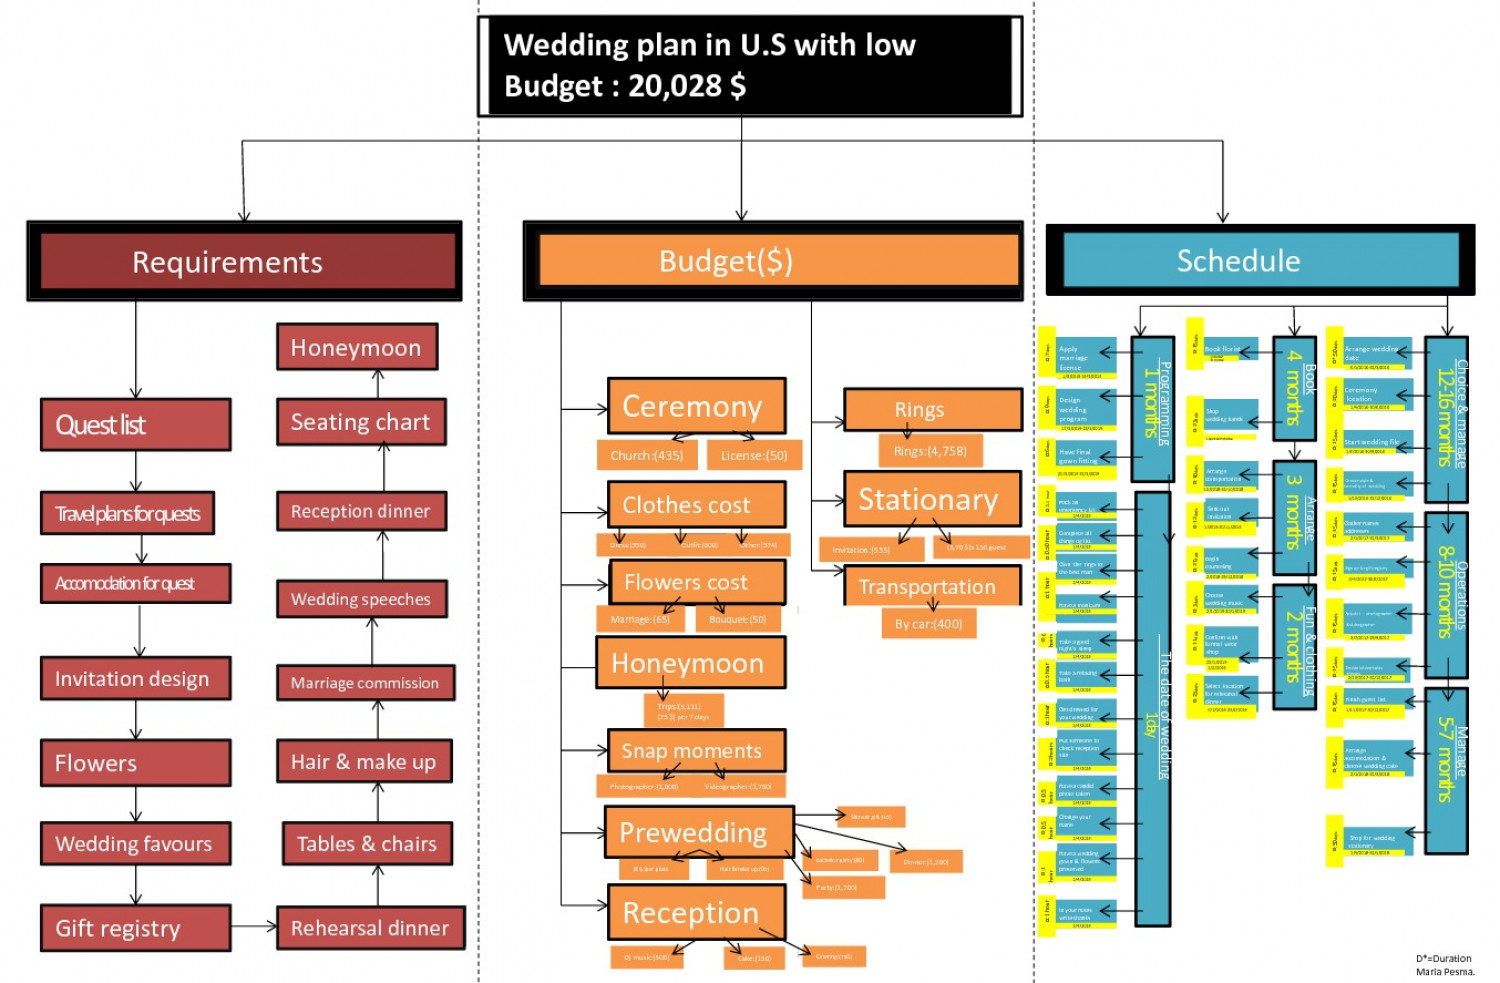 Wedding plan in U.S with low Budget : 20,028 $ Infographic